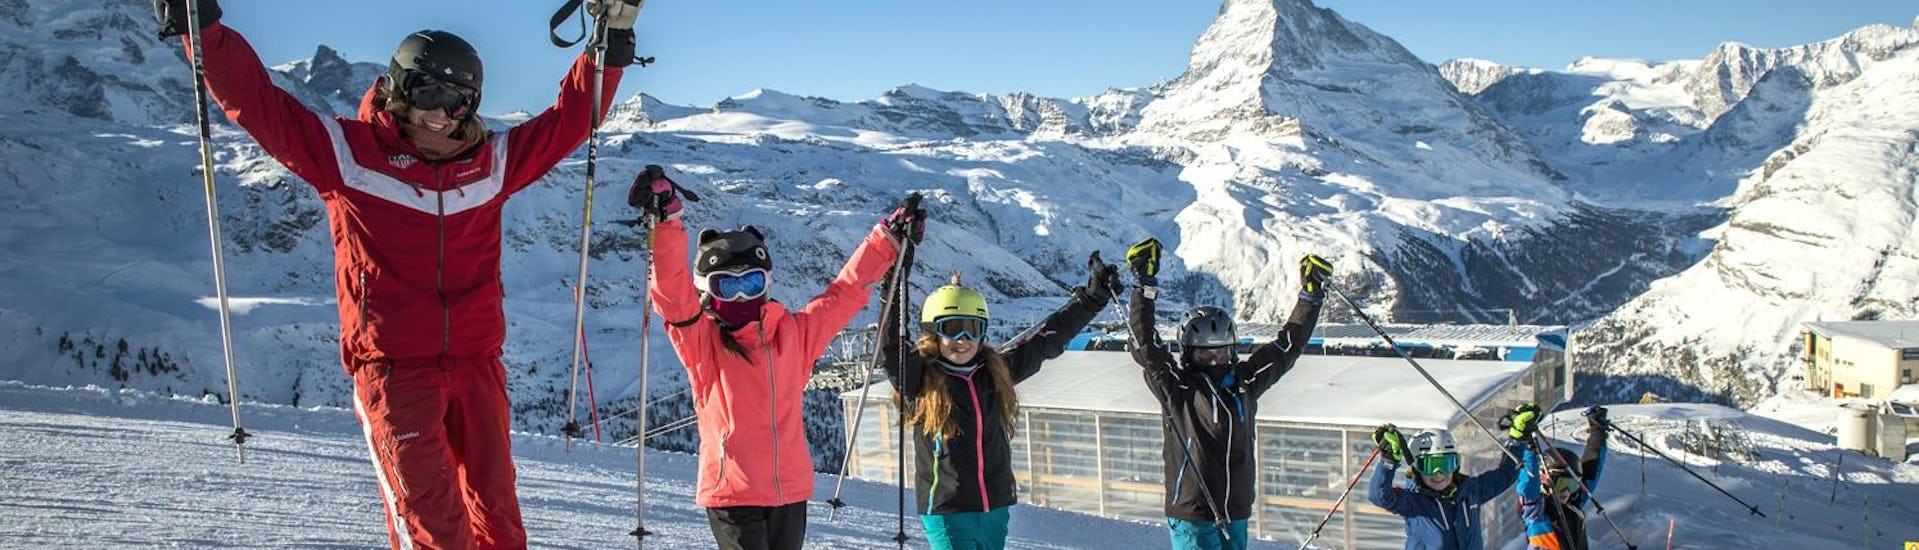 A group of young skiers and their ski instructor are posing for a group photo in front of the Matterhorn during their Kids Ski Lessons (6-14 years) - Beginners with Zermatters.